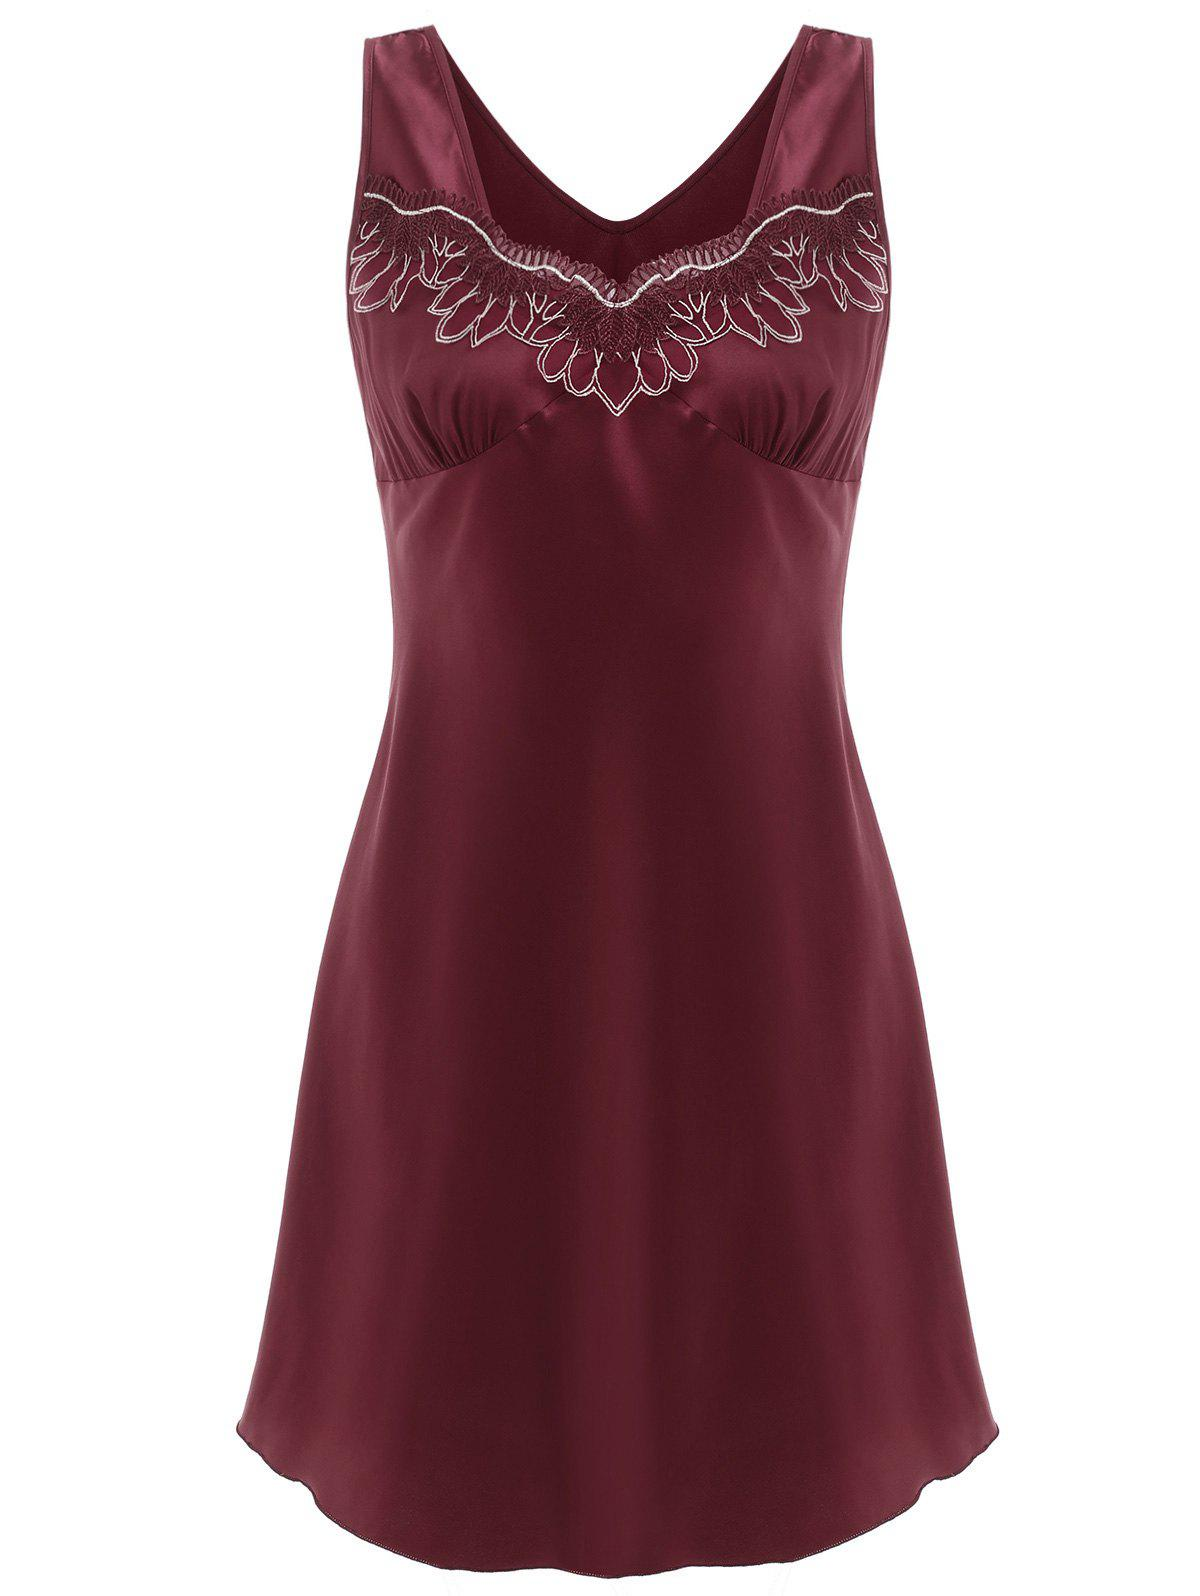 Discount Lace Insert Sleeveless Sleeping Dress